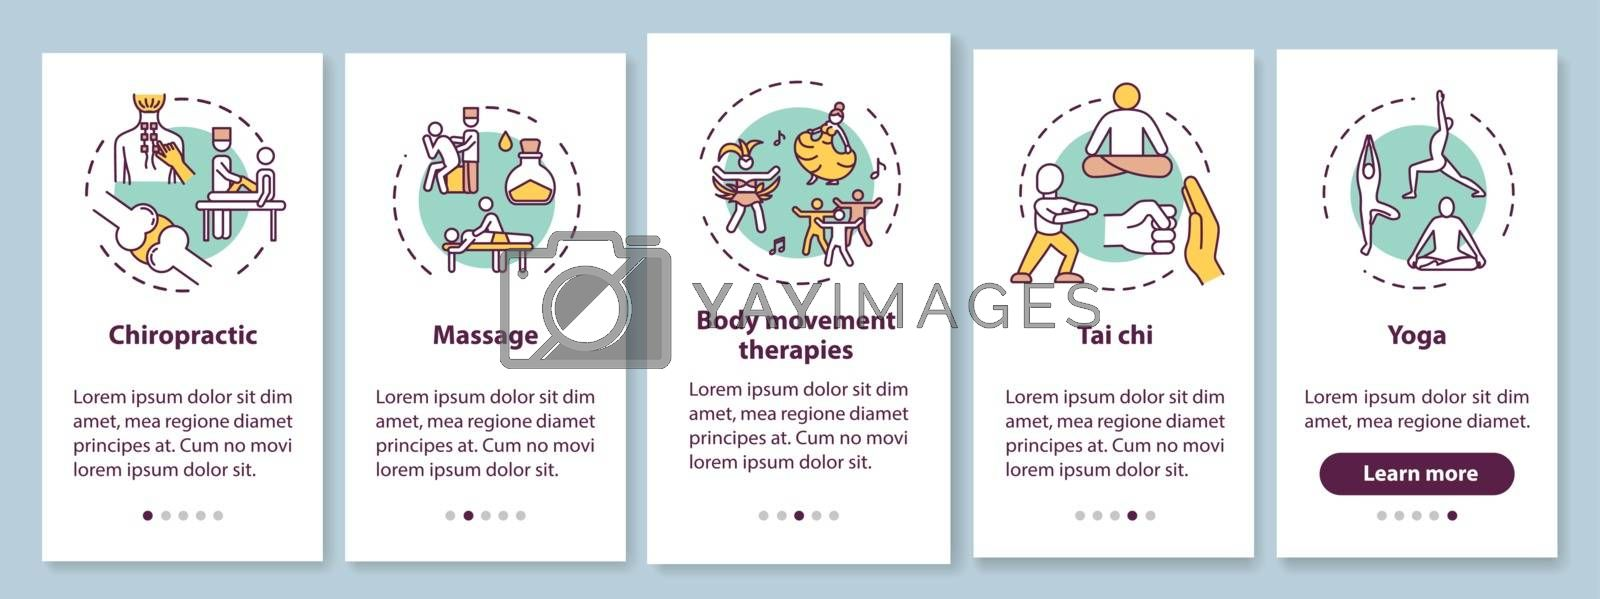 Sensory medicine onboarding mobile app page screen with concepts. Alternative healing techniques walkthrough five steps graphic instructions. UI vector template with RGB color illustrations by bsd